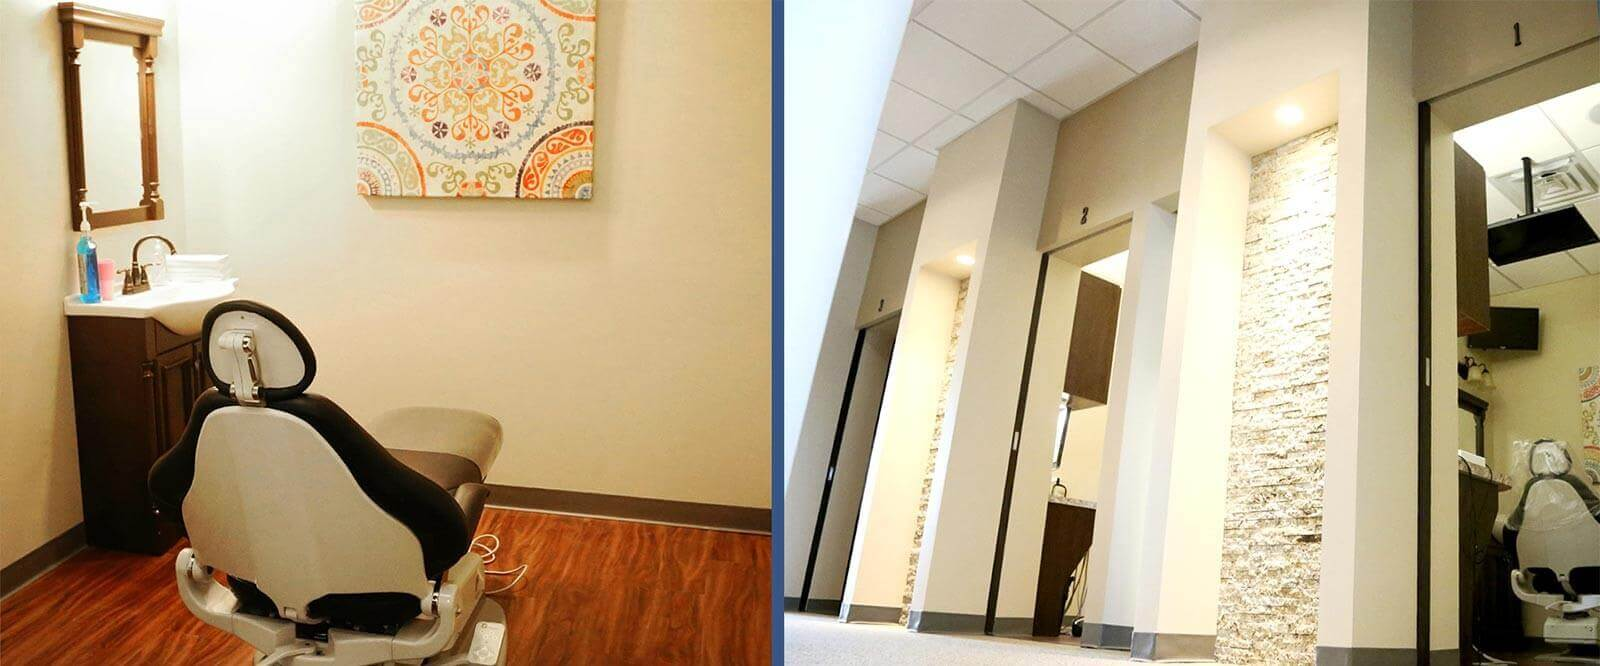 Hallway/Operatory Room - Overland Park Family Dental